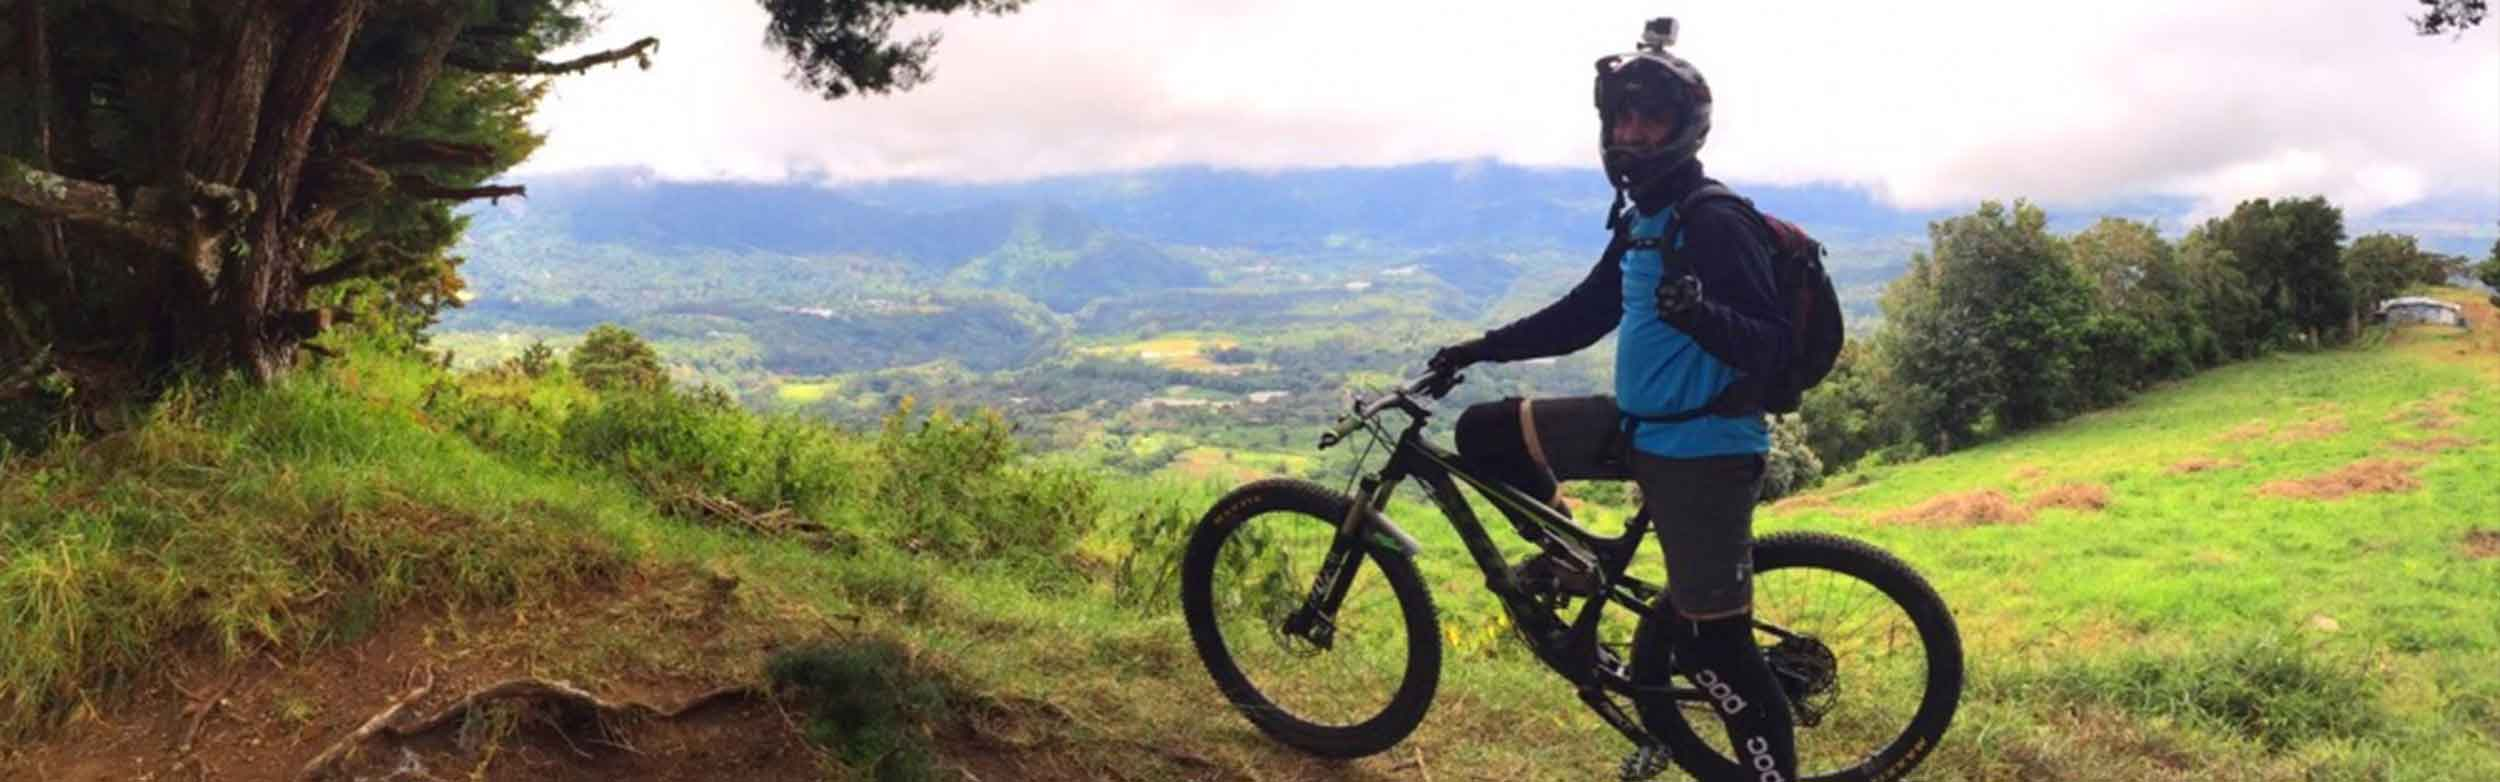 Biking from the Mountains to the Coast